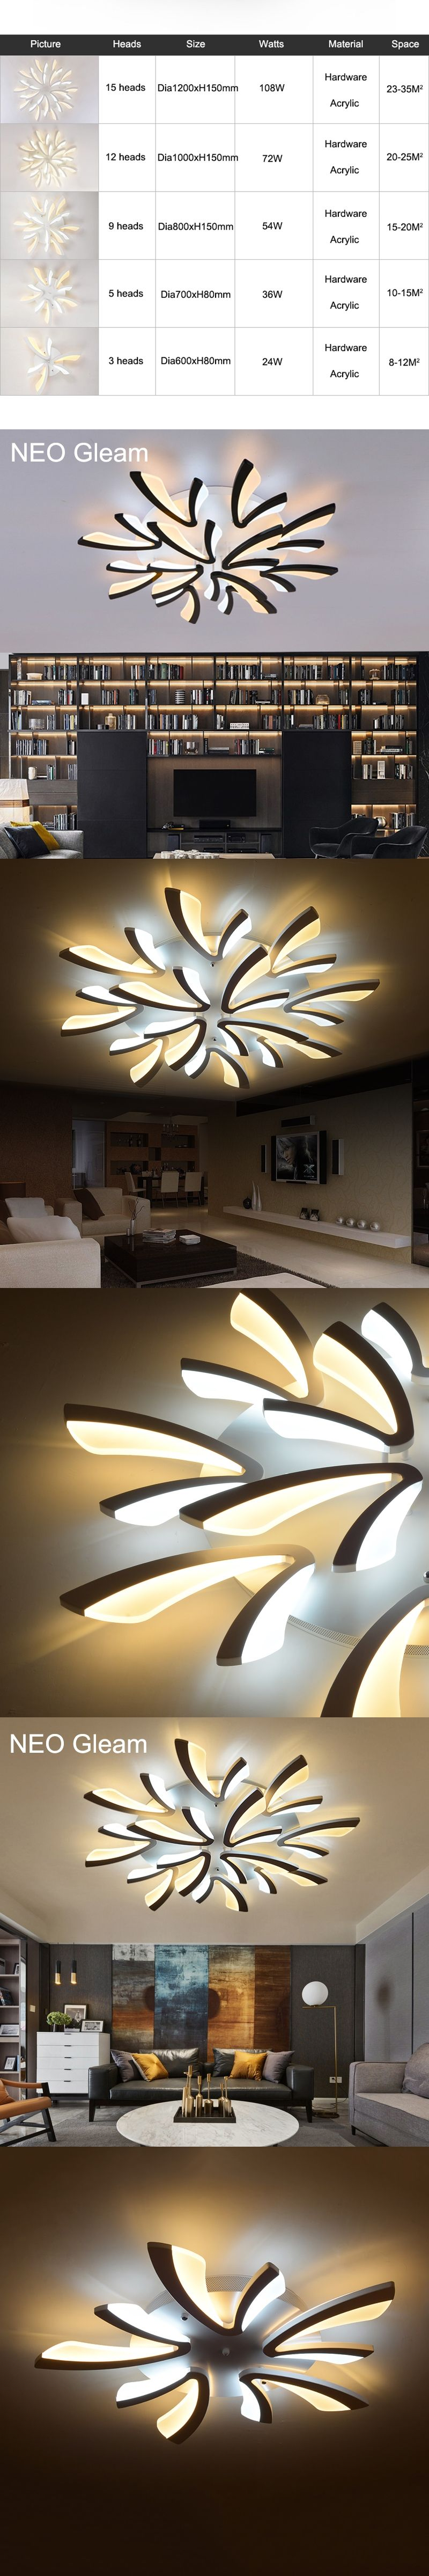 NEO Gleam Acrylic Thick Modern Led Ceiling Lights For Living Room Bedroom Dining Home